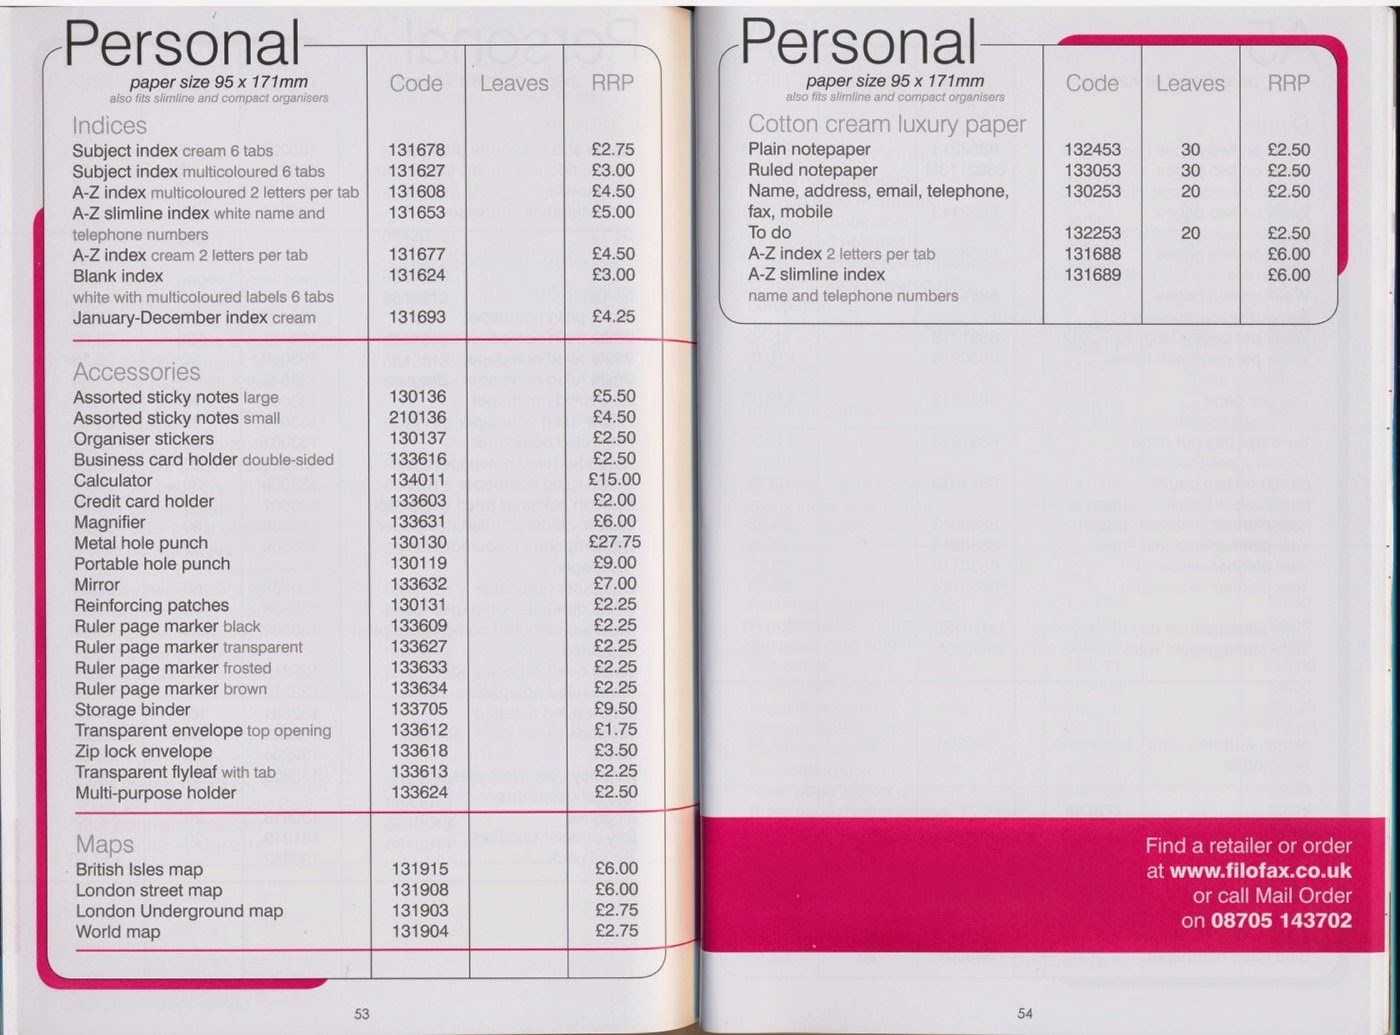 Philofaxy Filofax Uk 2012 13 Catalogue Name Cards Holder Binder 6214 And You Can Find Higher Resolutions Of These Scans On Flickr